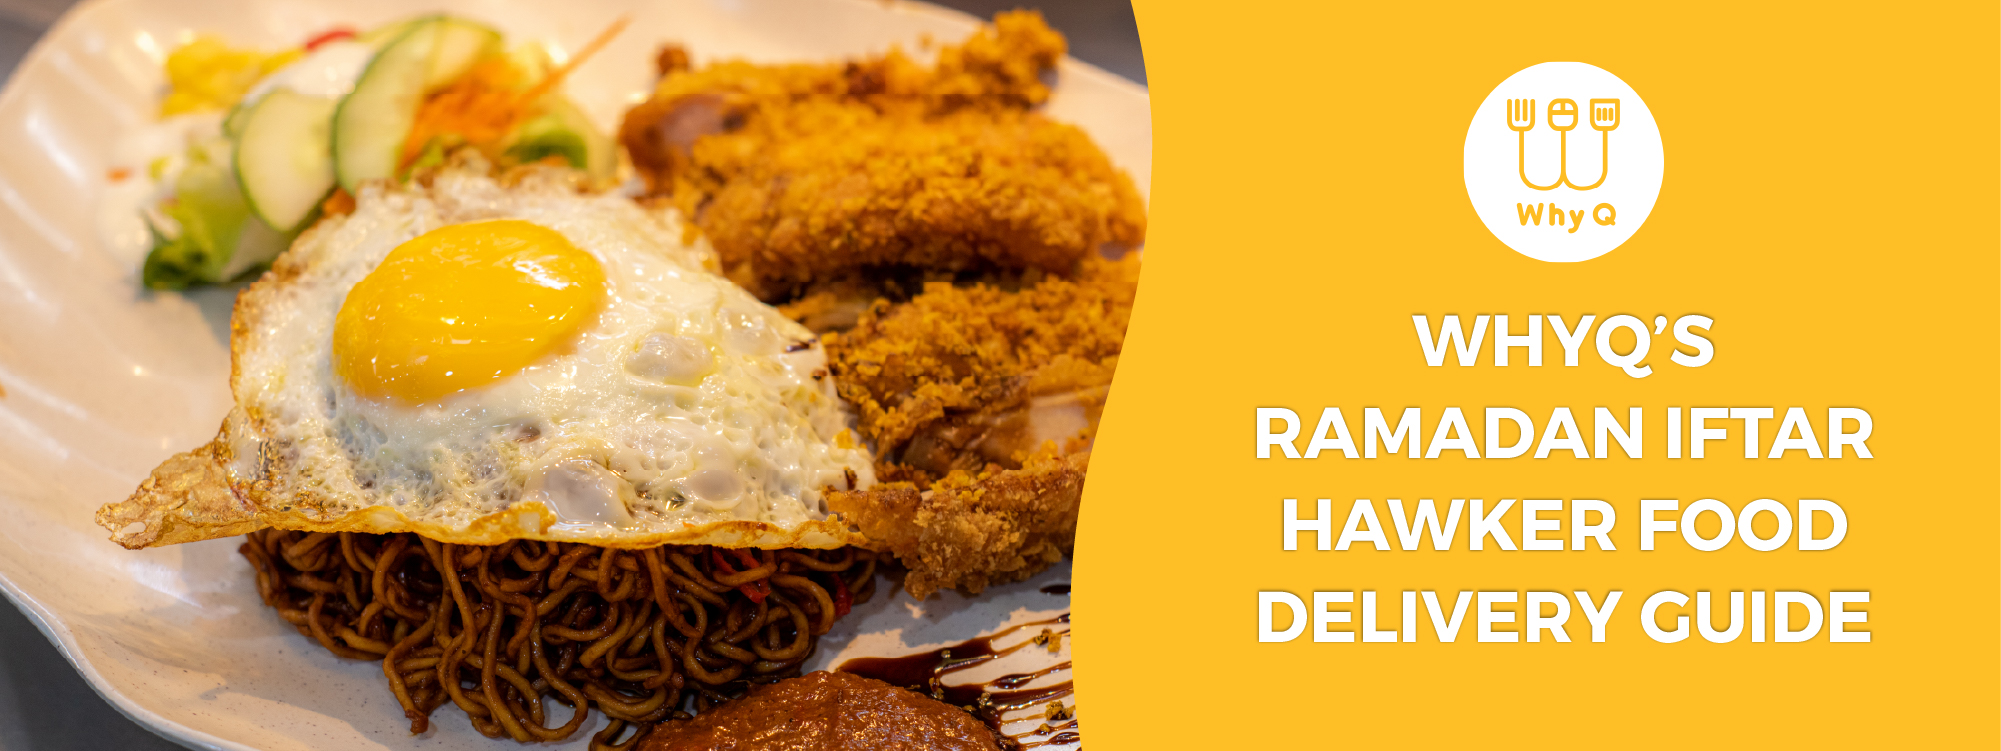 WhyQ Ramadan Iftar Hawker Food Delivery Guide